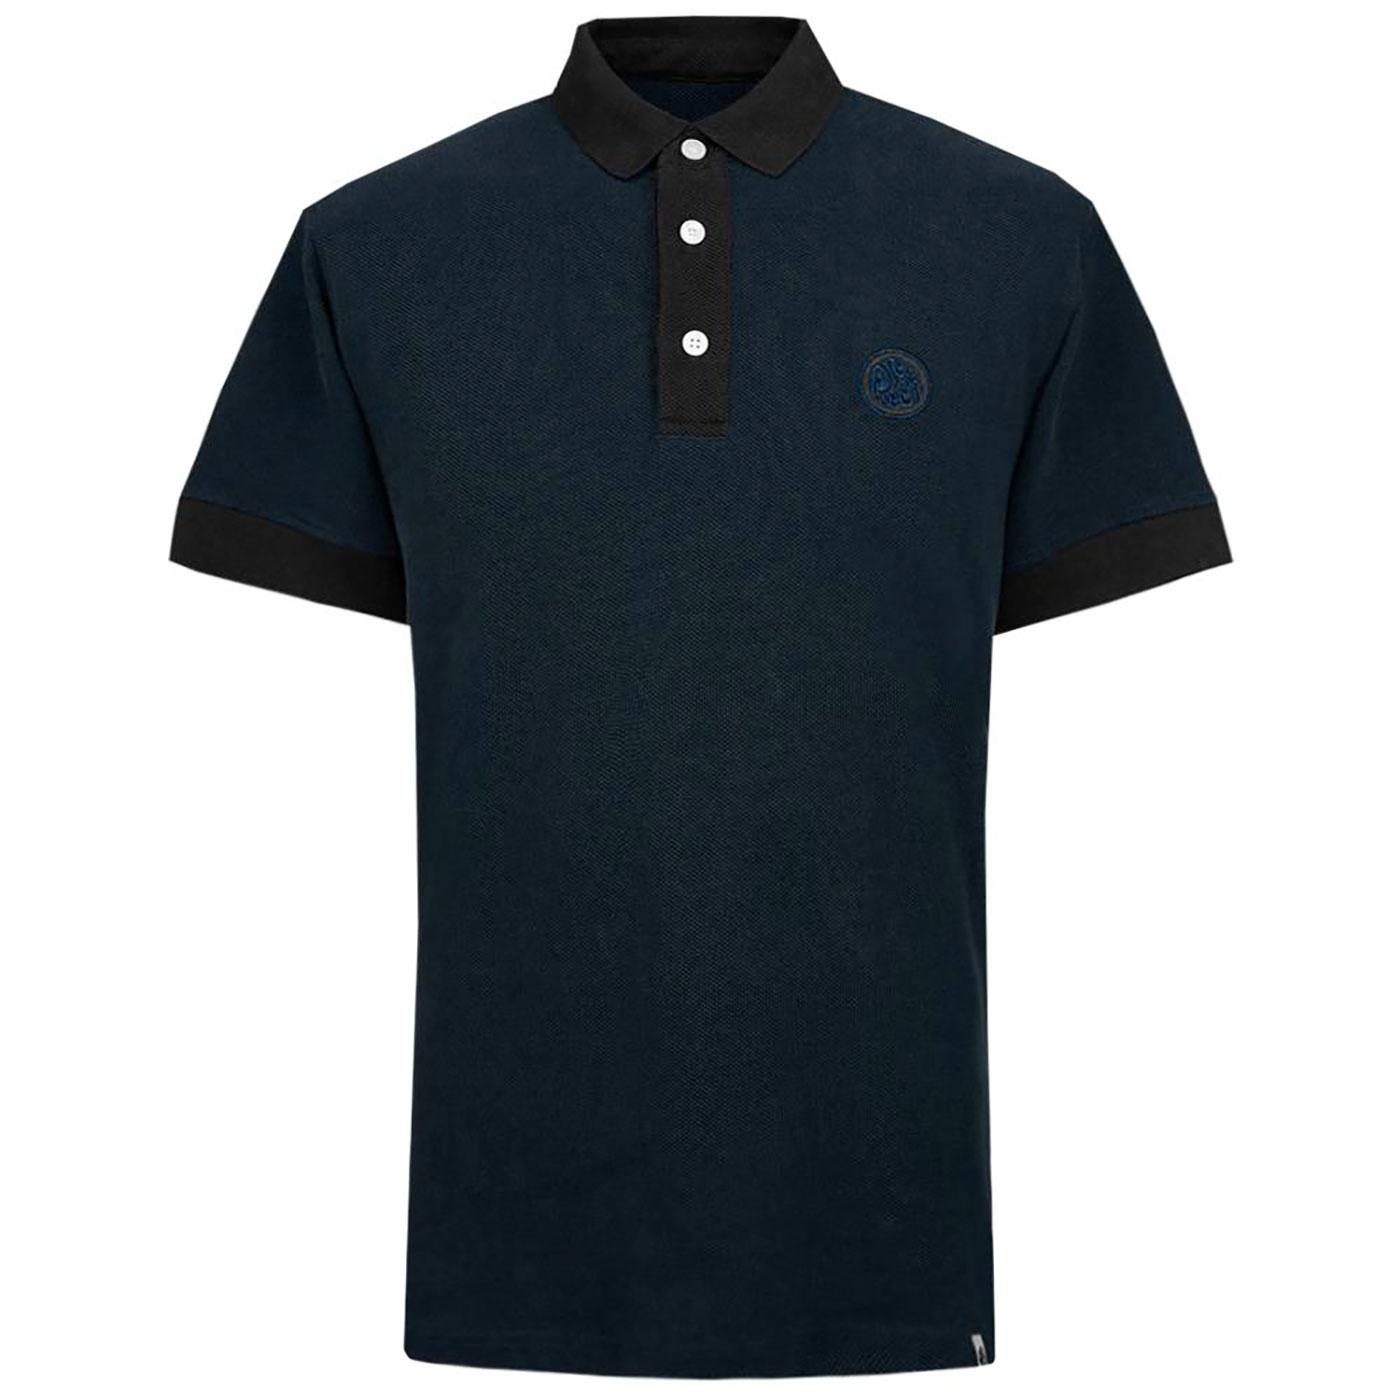 PRETTY GREEN 1960s Heavyweight Pique Polo Shirt BL